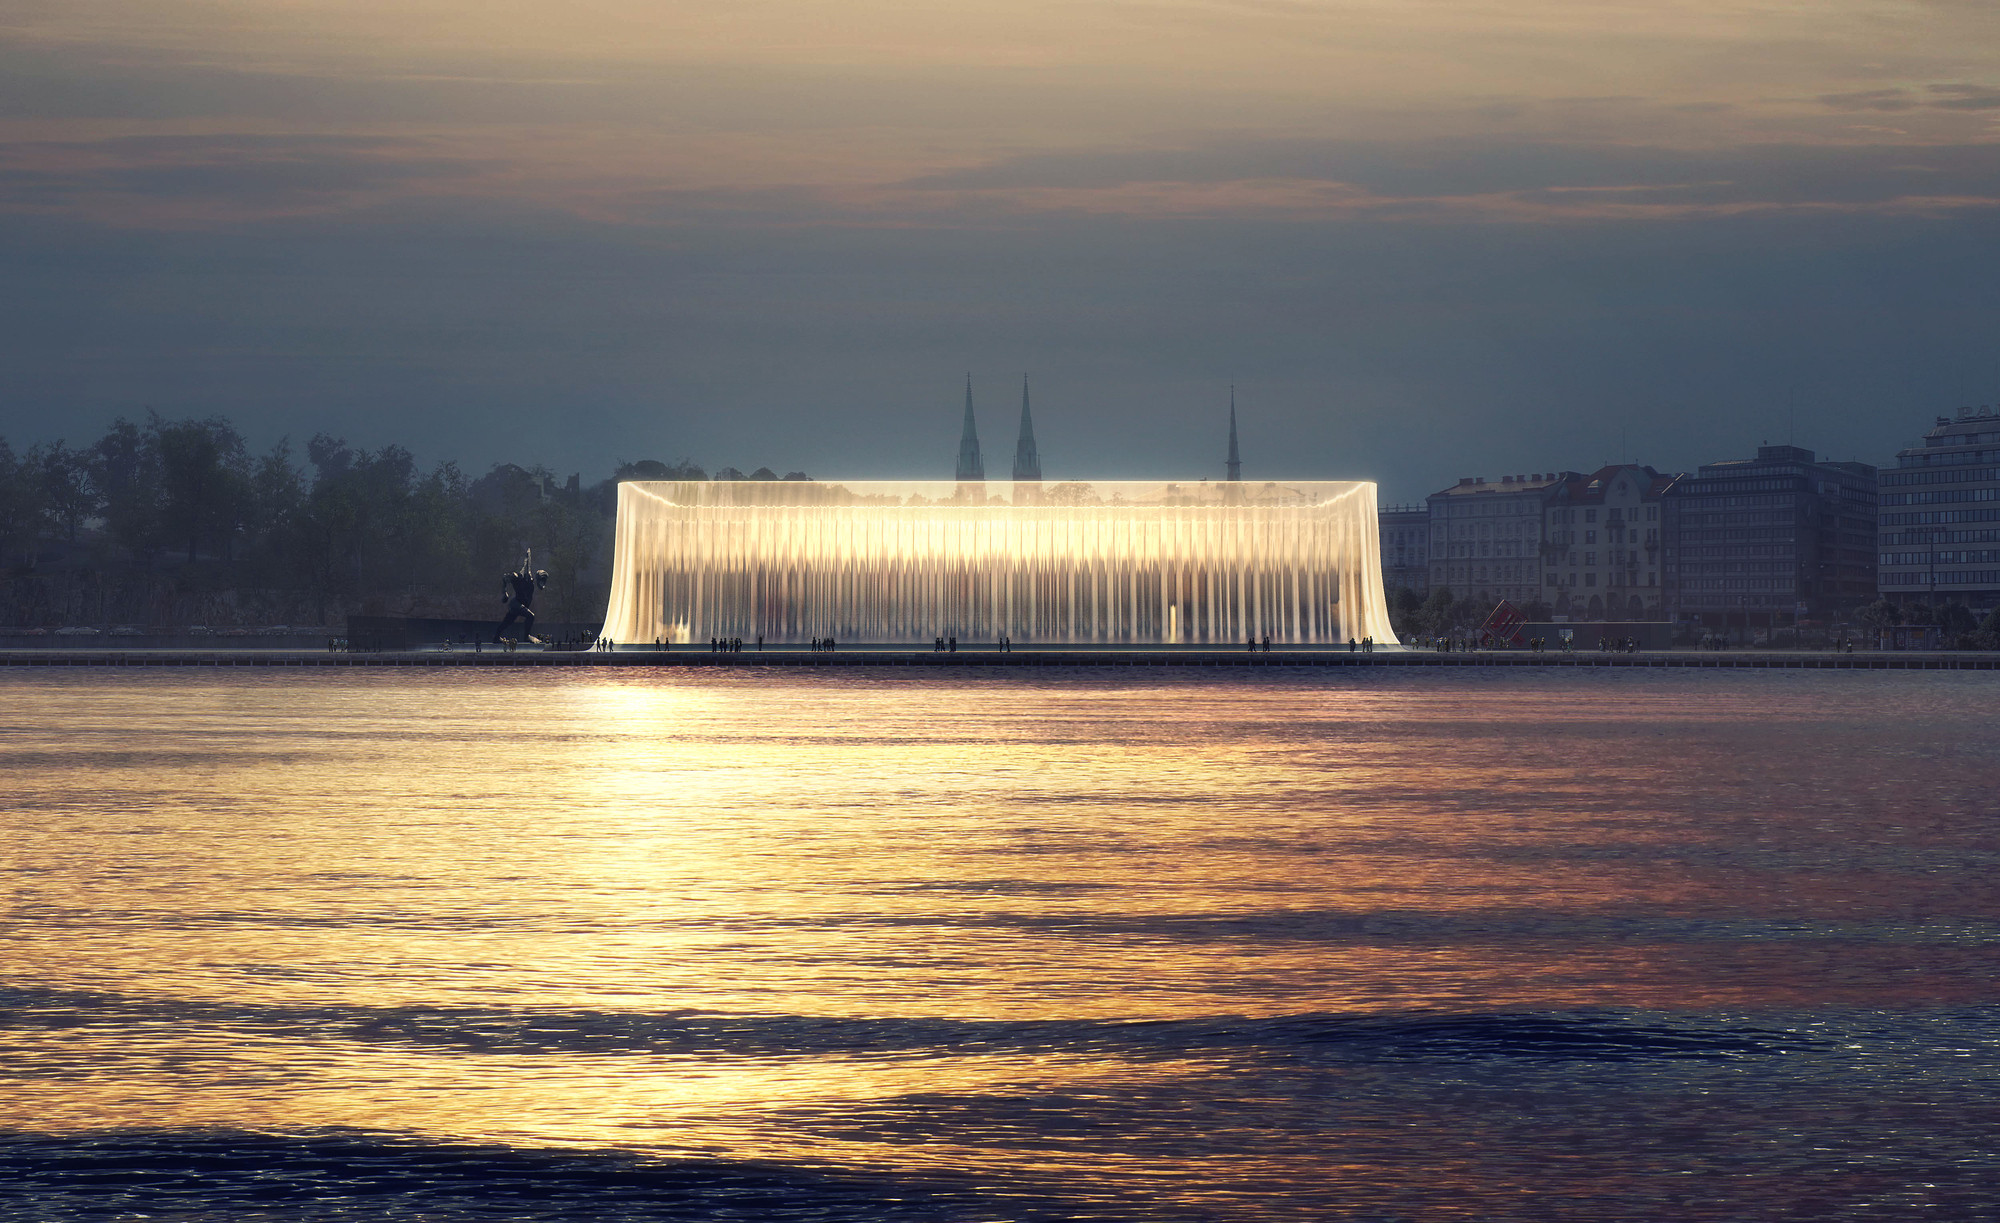 7 Takeaways from Van Alen's Survey on Architectural Competitions, One of 6 final designs unveiled for Guggenheim Helsinki - the world's most popular open architectural competition. Image © GH-121371443